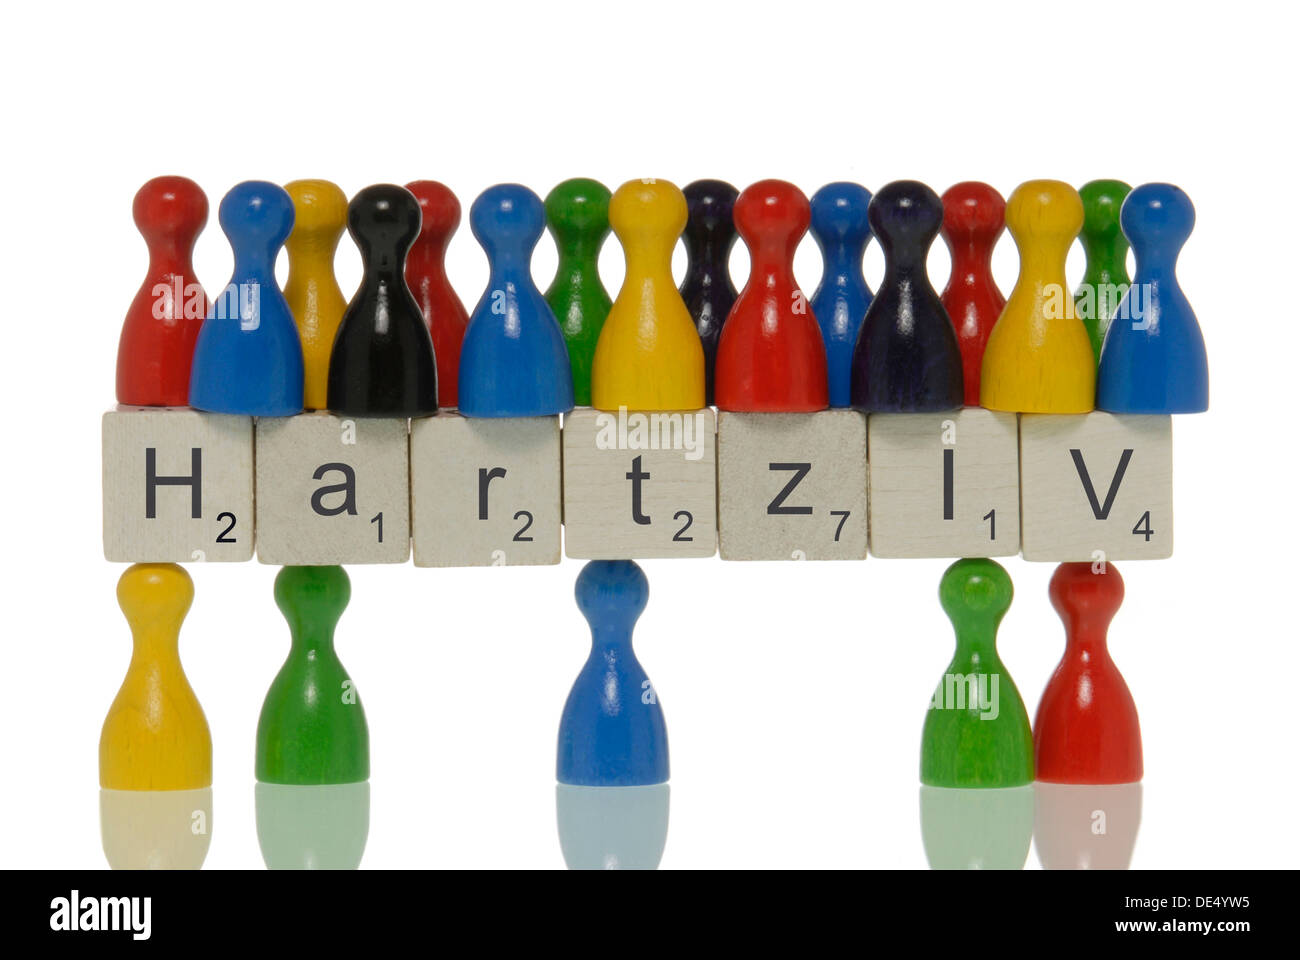 Few game pieces carrying more game pieces on scrabble pieces with the lettering 'Hartz IV', symbolic for demographic, Hartz IV - Stock Image